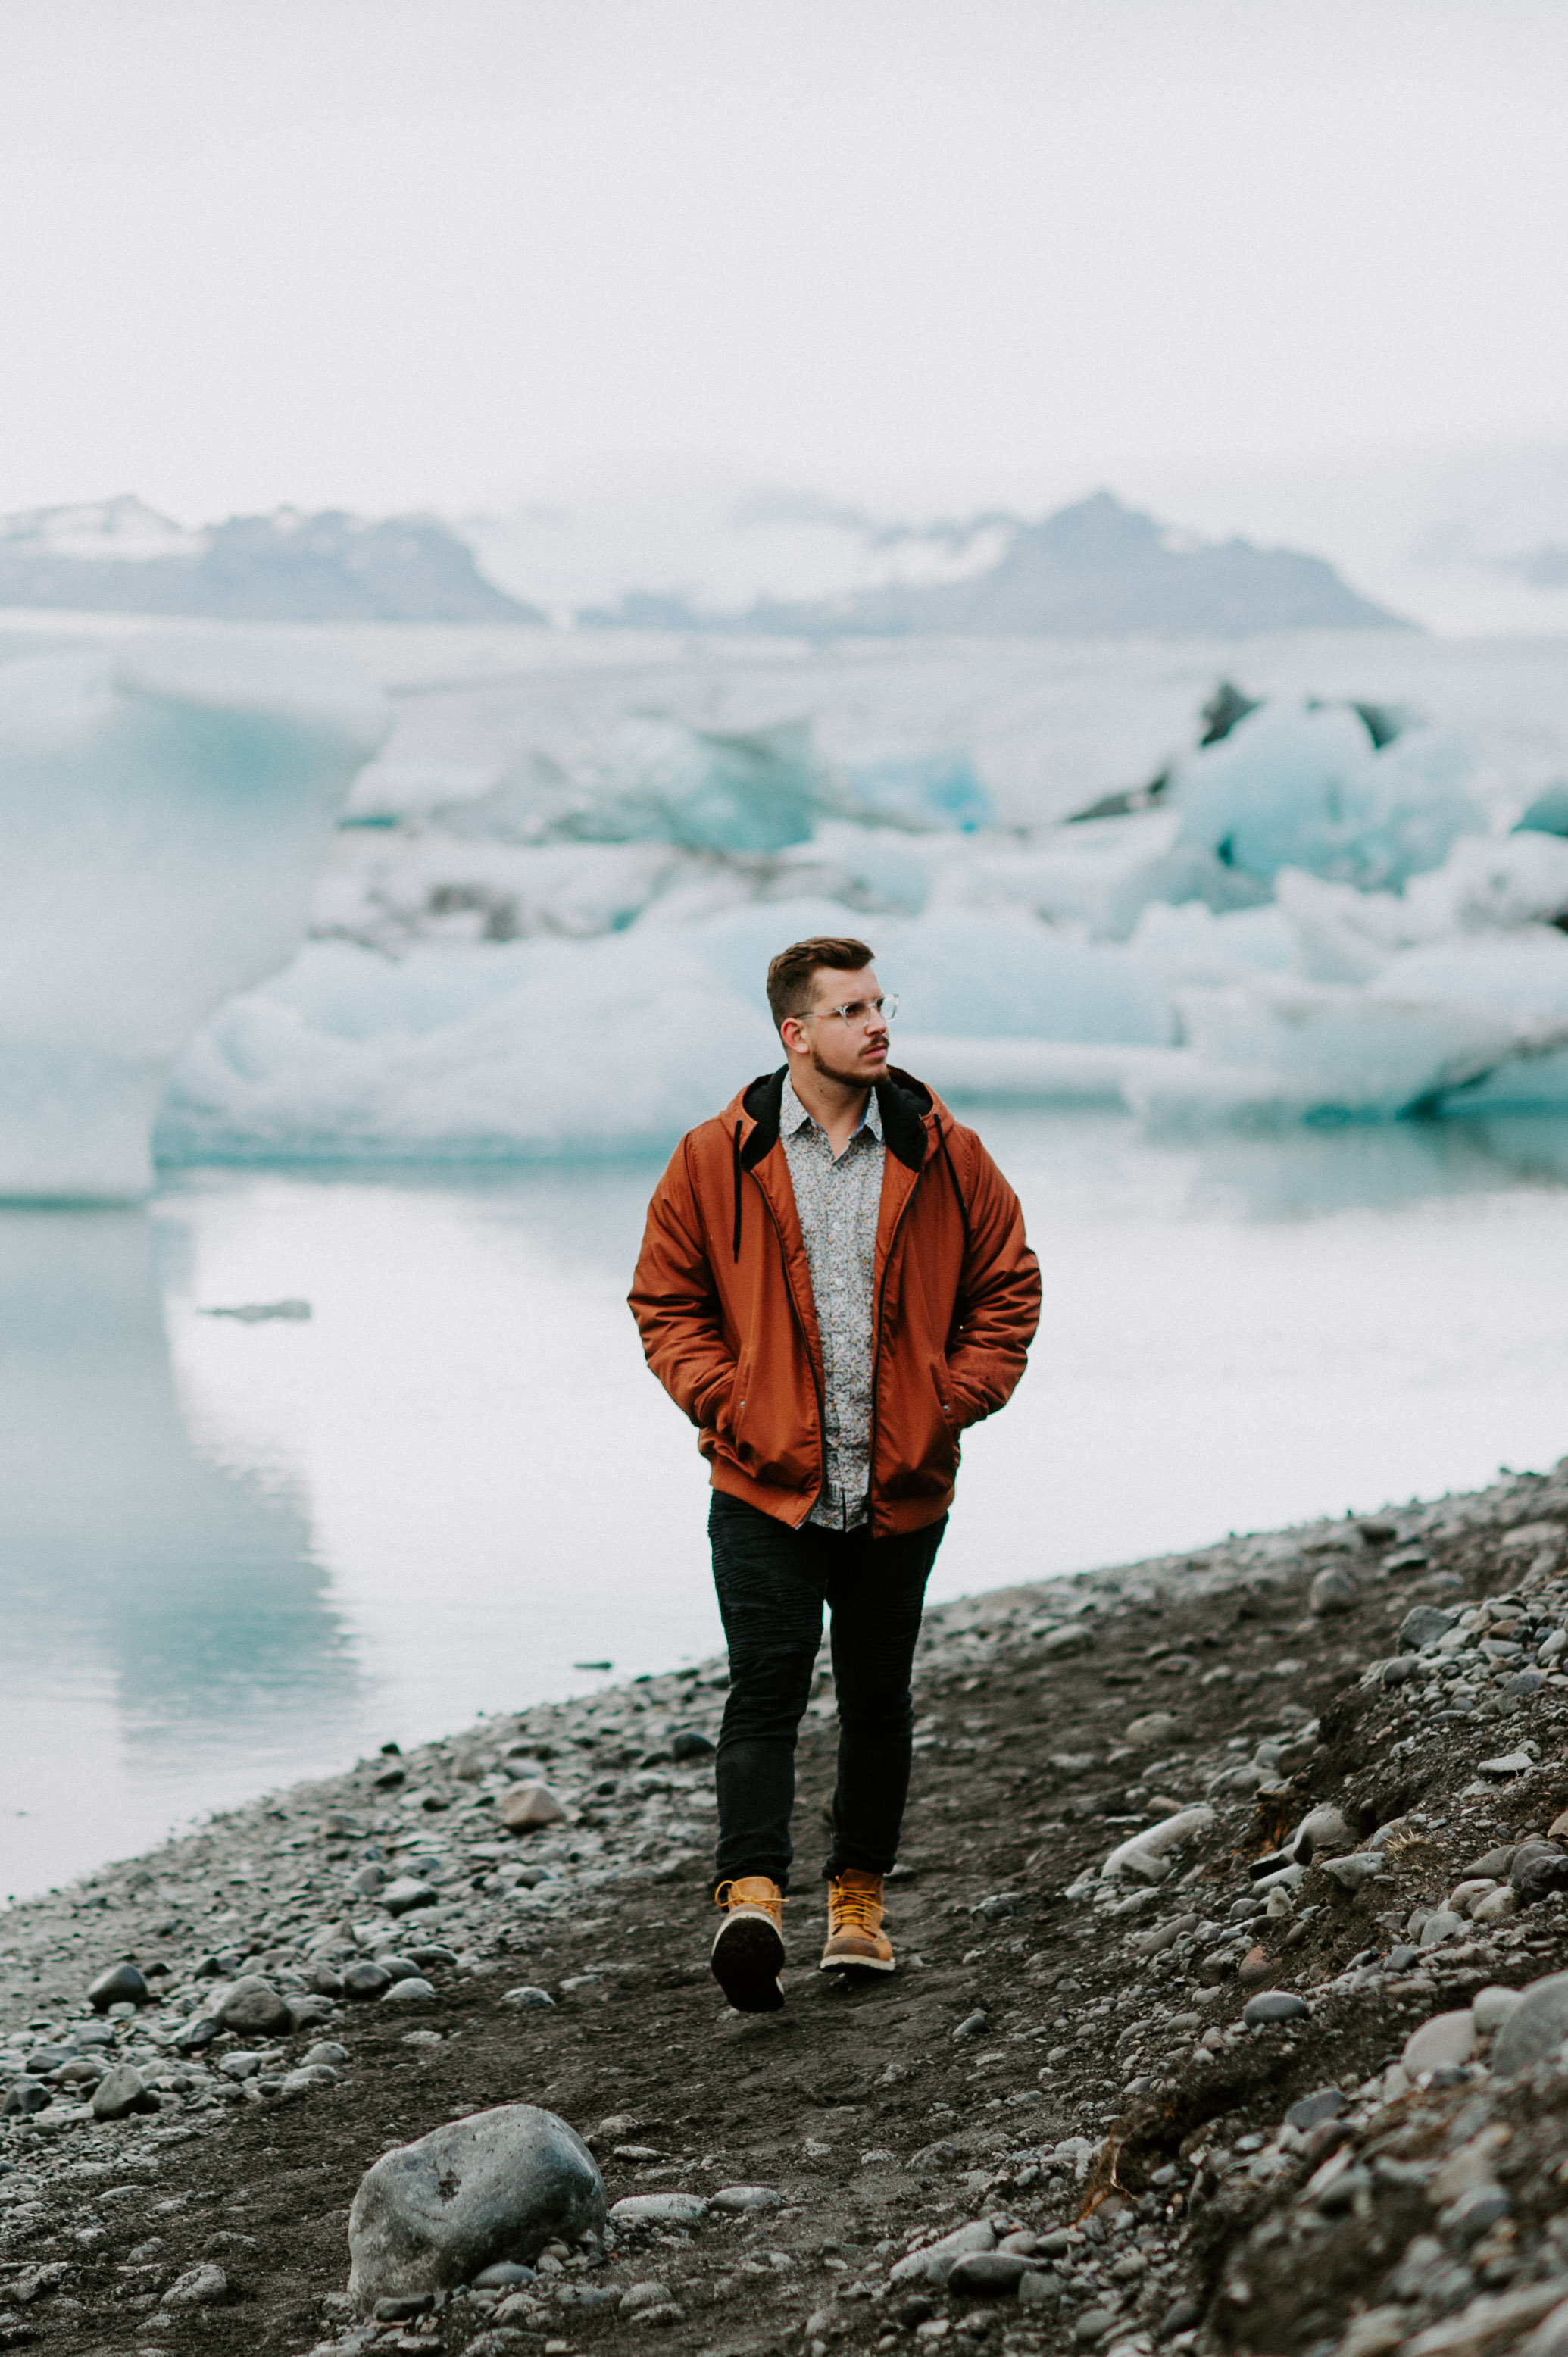 Hi, I'm RJ. - Here I am in front of some glaciers in Iceland.